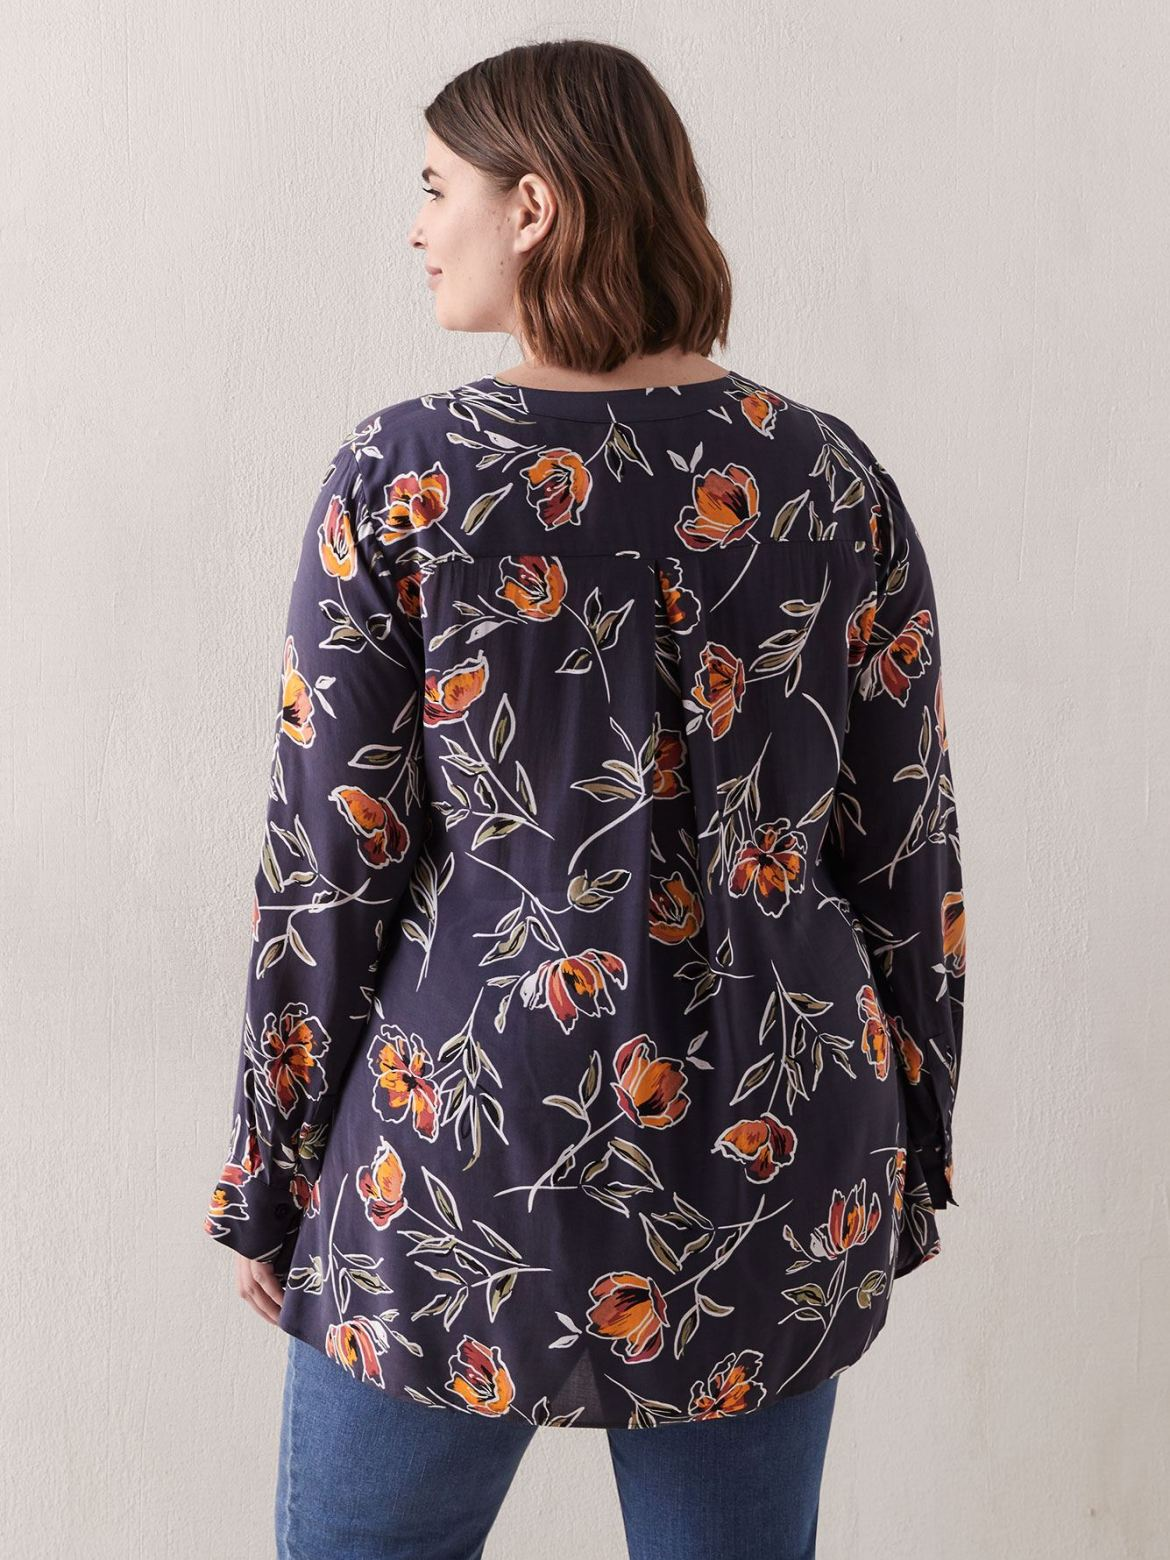 Pop-Over Tunic Blouse with pockets - In Every Story